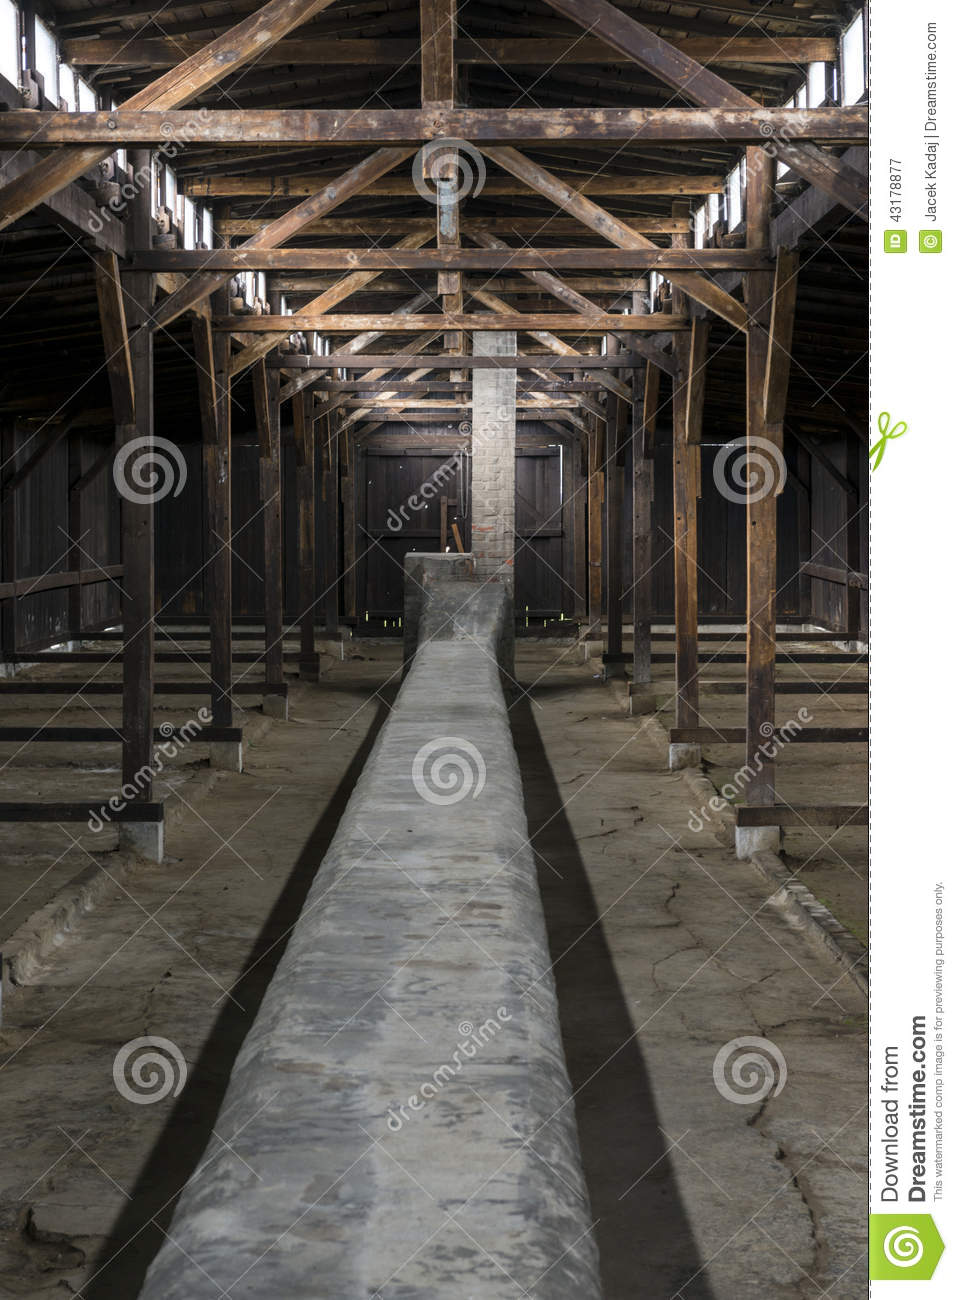 inside of barrack in auschwitz concentration camp poland